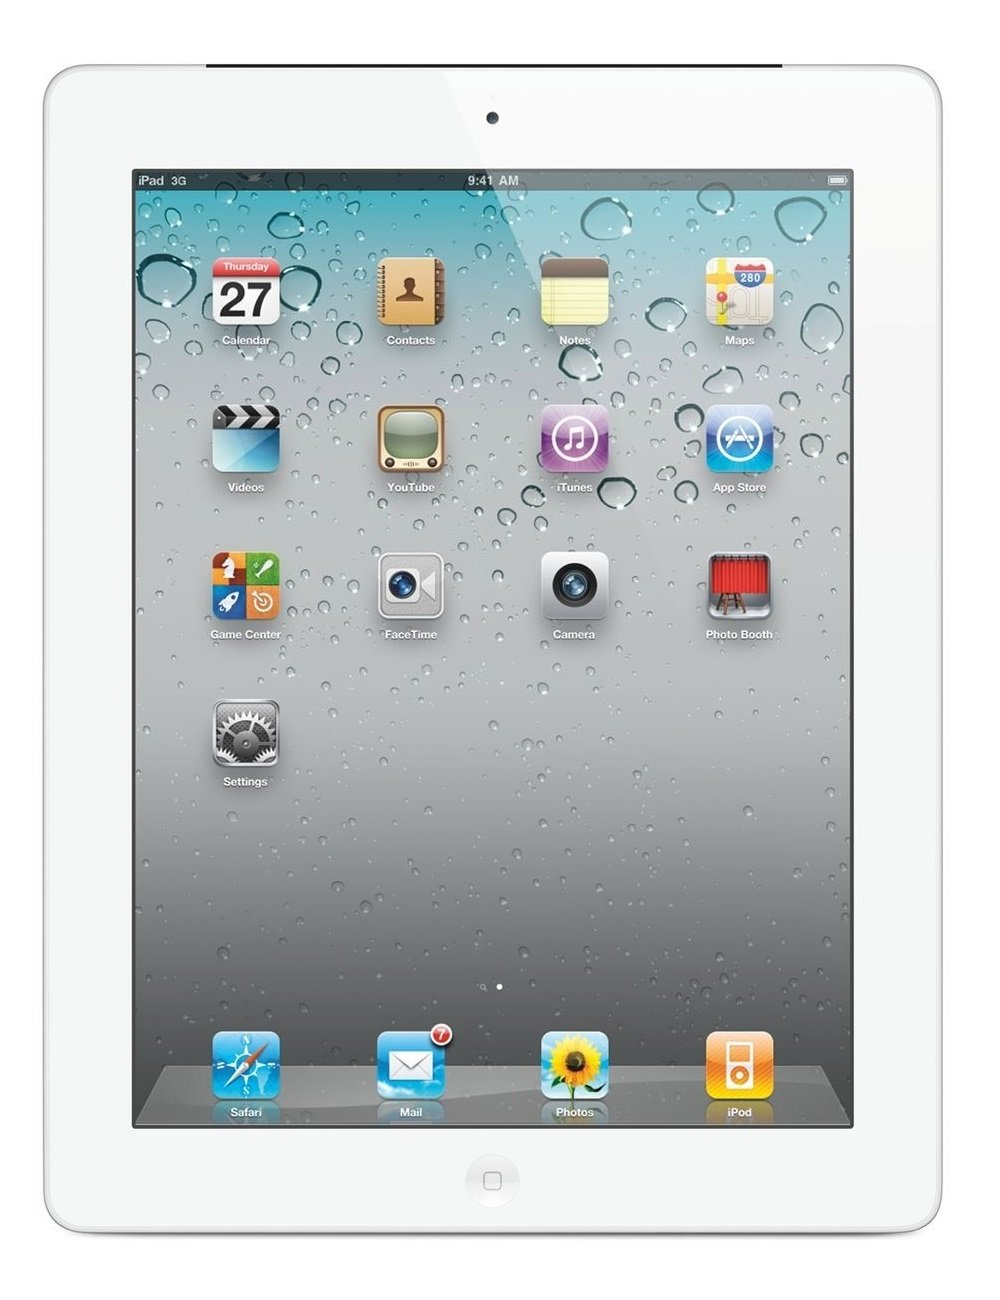 Should I return this iPad 2 that I bought yesterday?